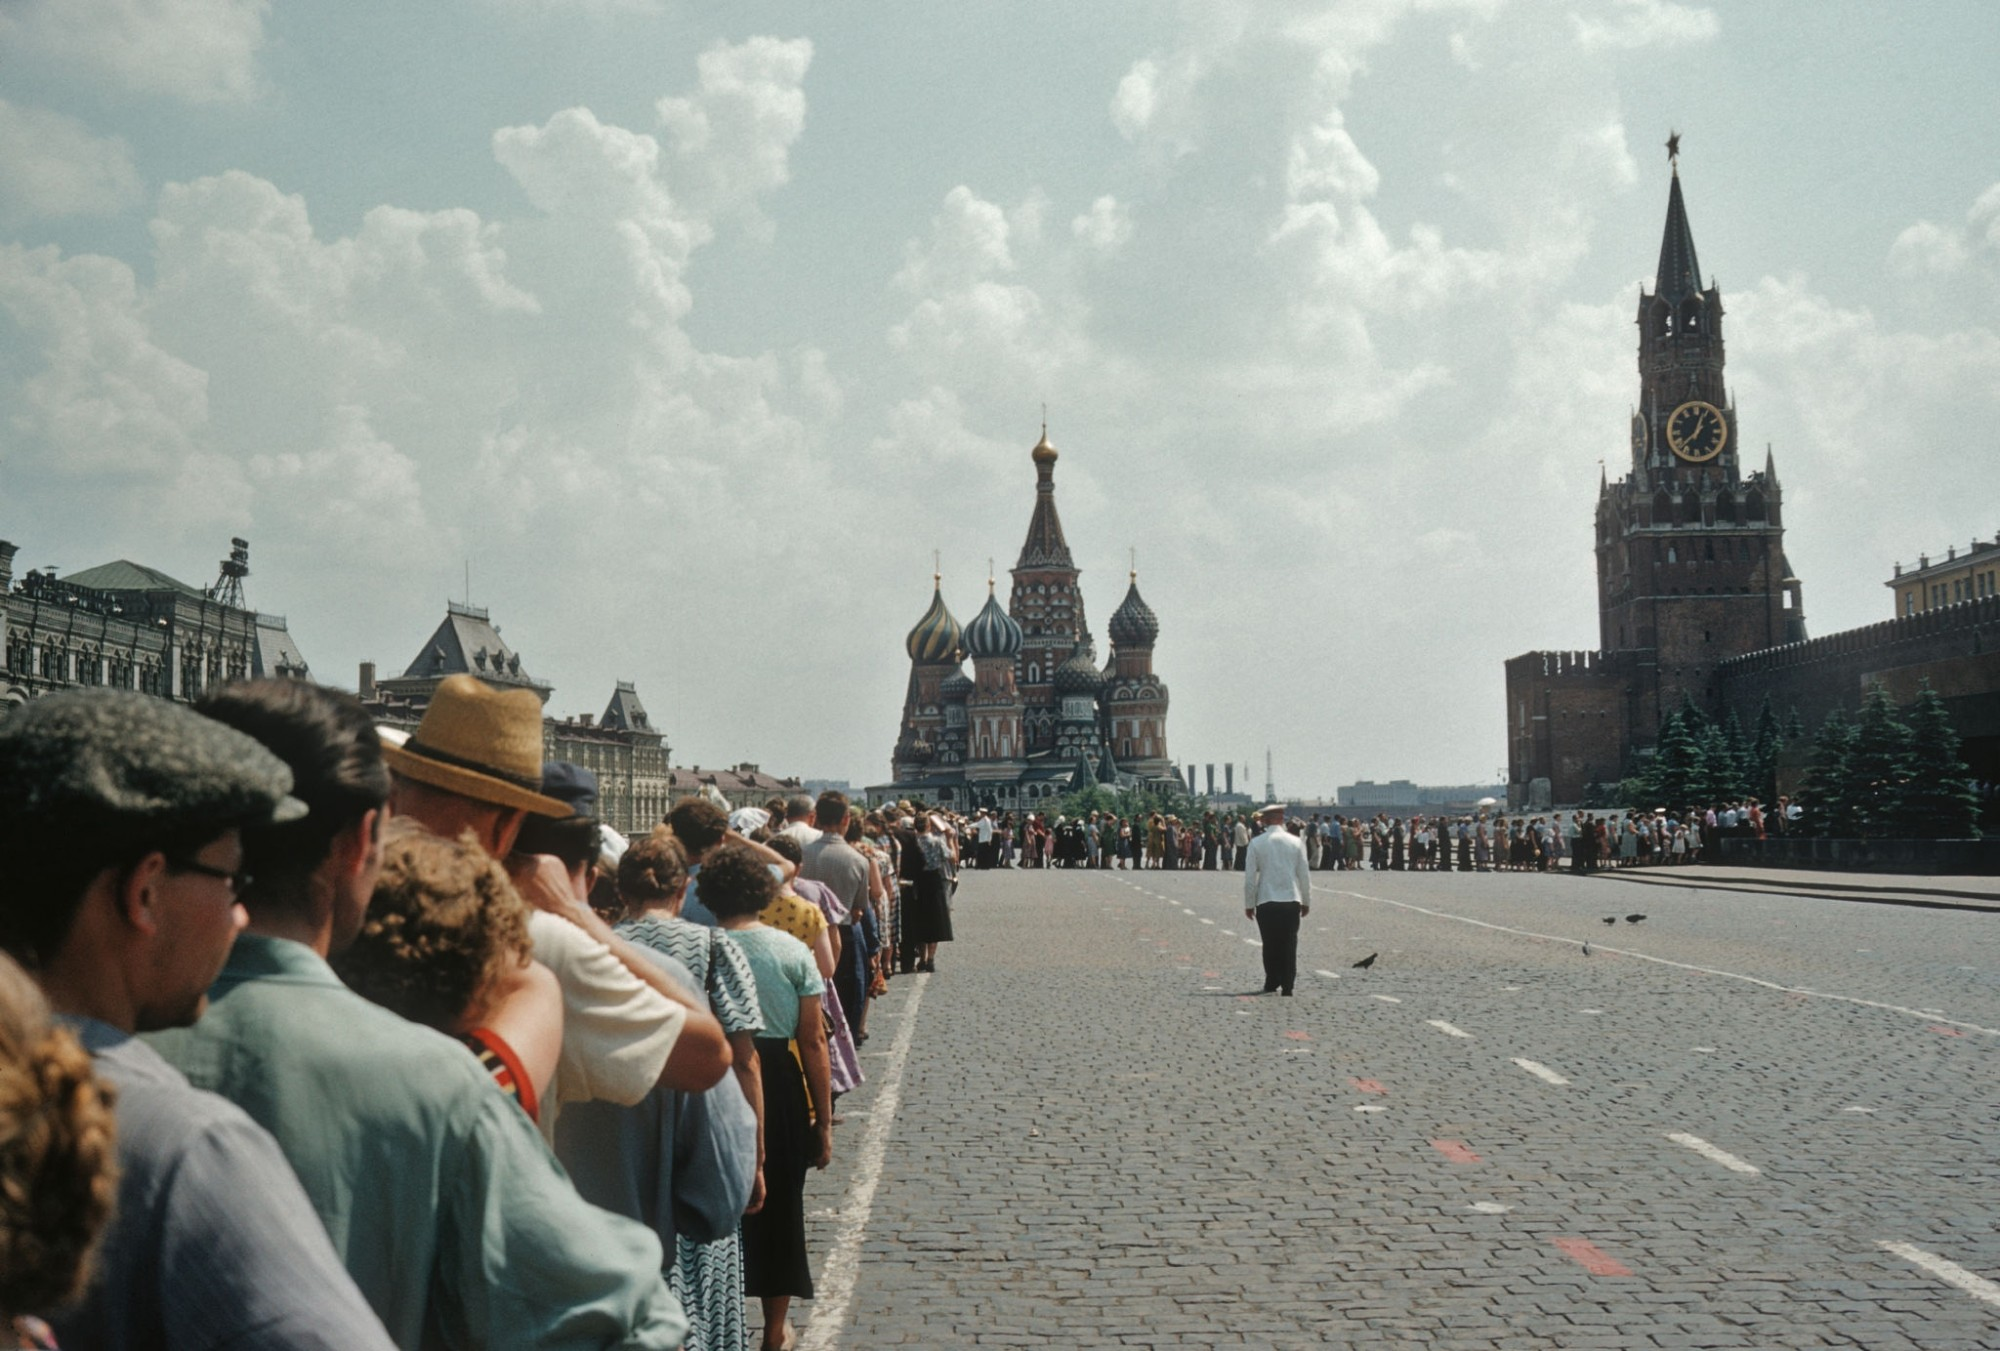 A queue of people waiting to visit Lenin's Mausoleum in Red Square, August 1969 by J. Russel Gilman